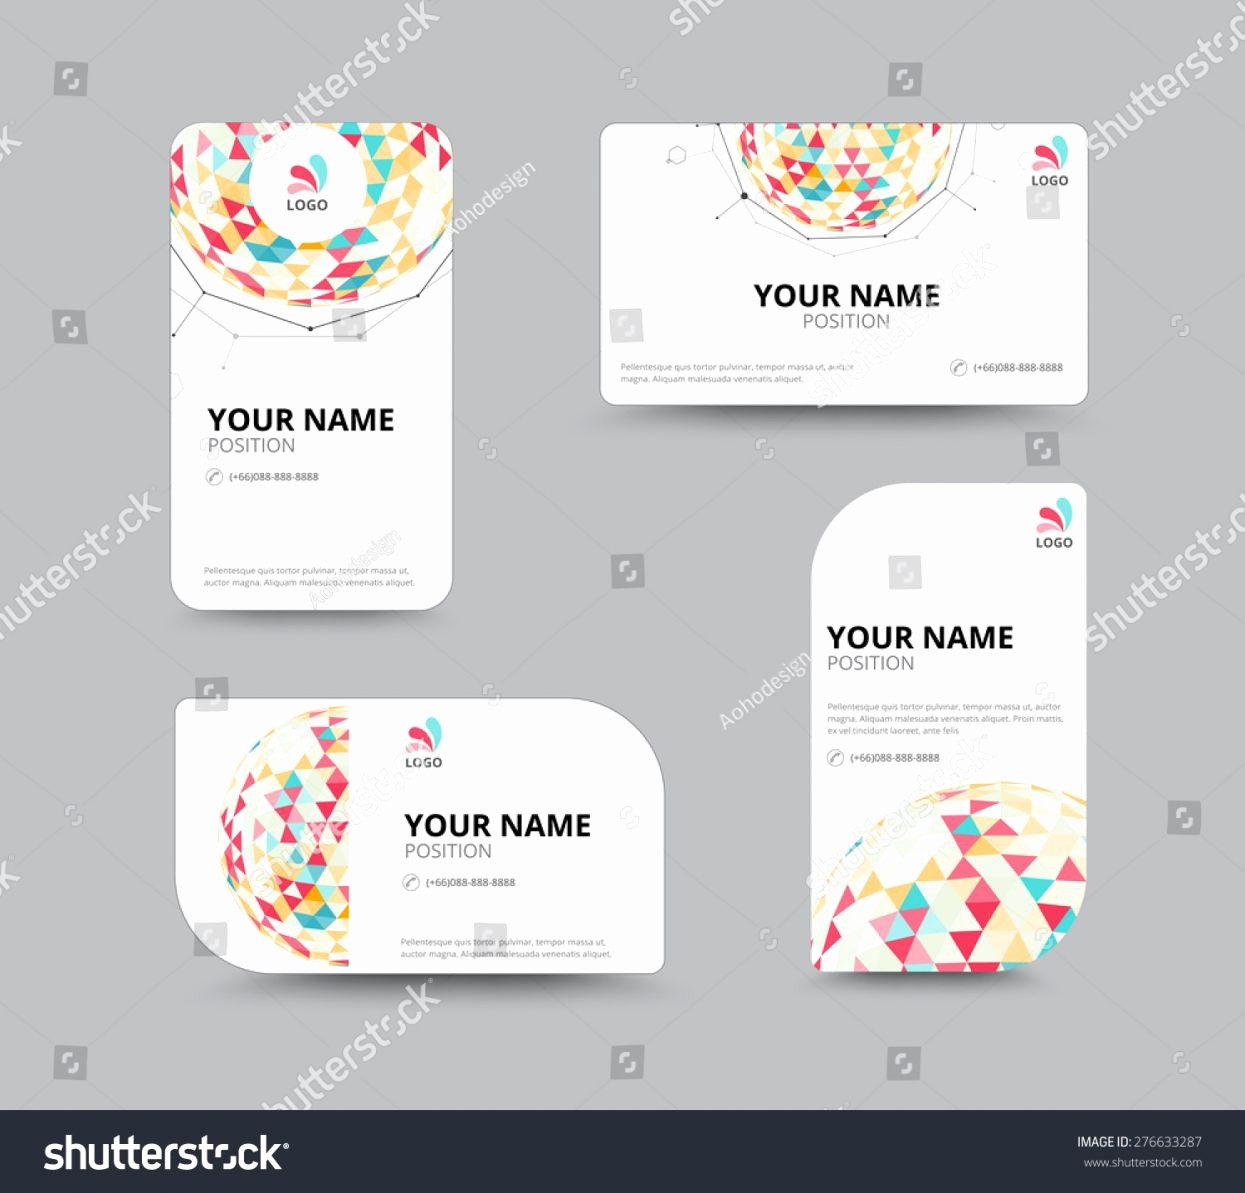 Microsoft Business Card Template Free New Business Card Templates Publisher Free Fancy Microsoft